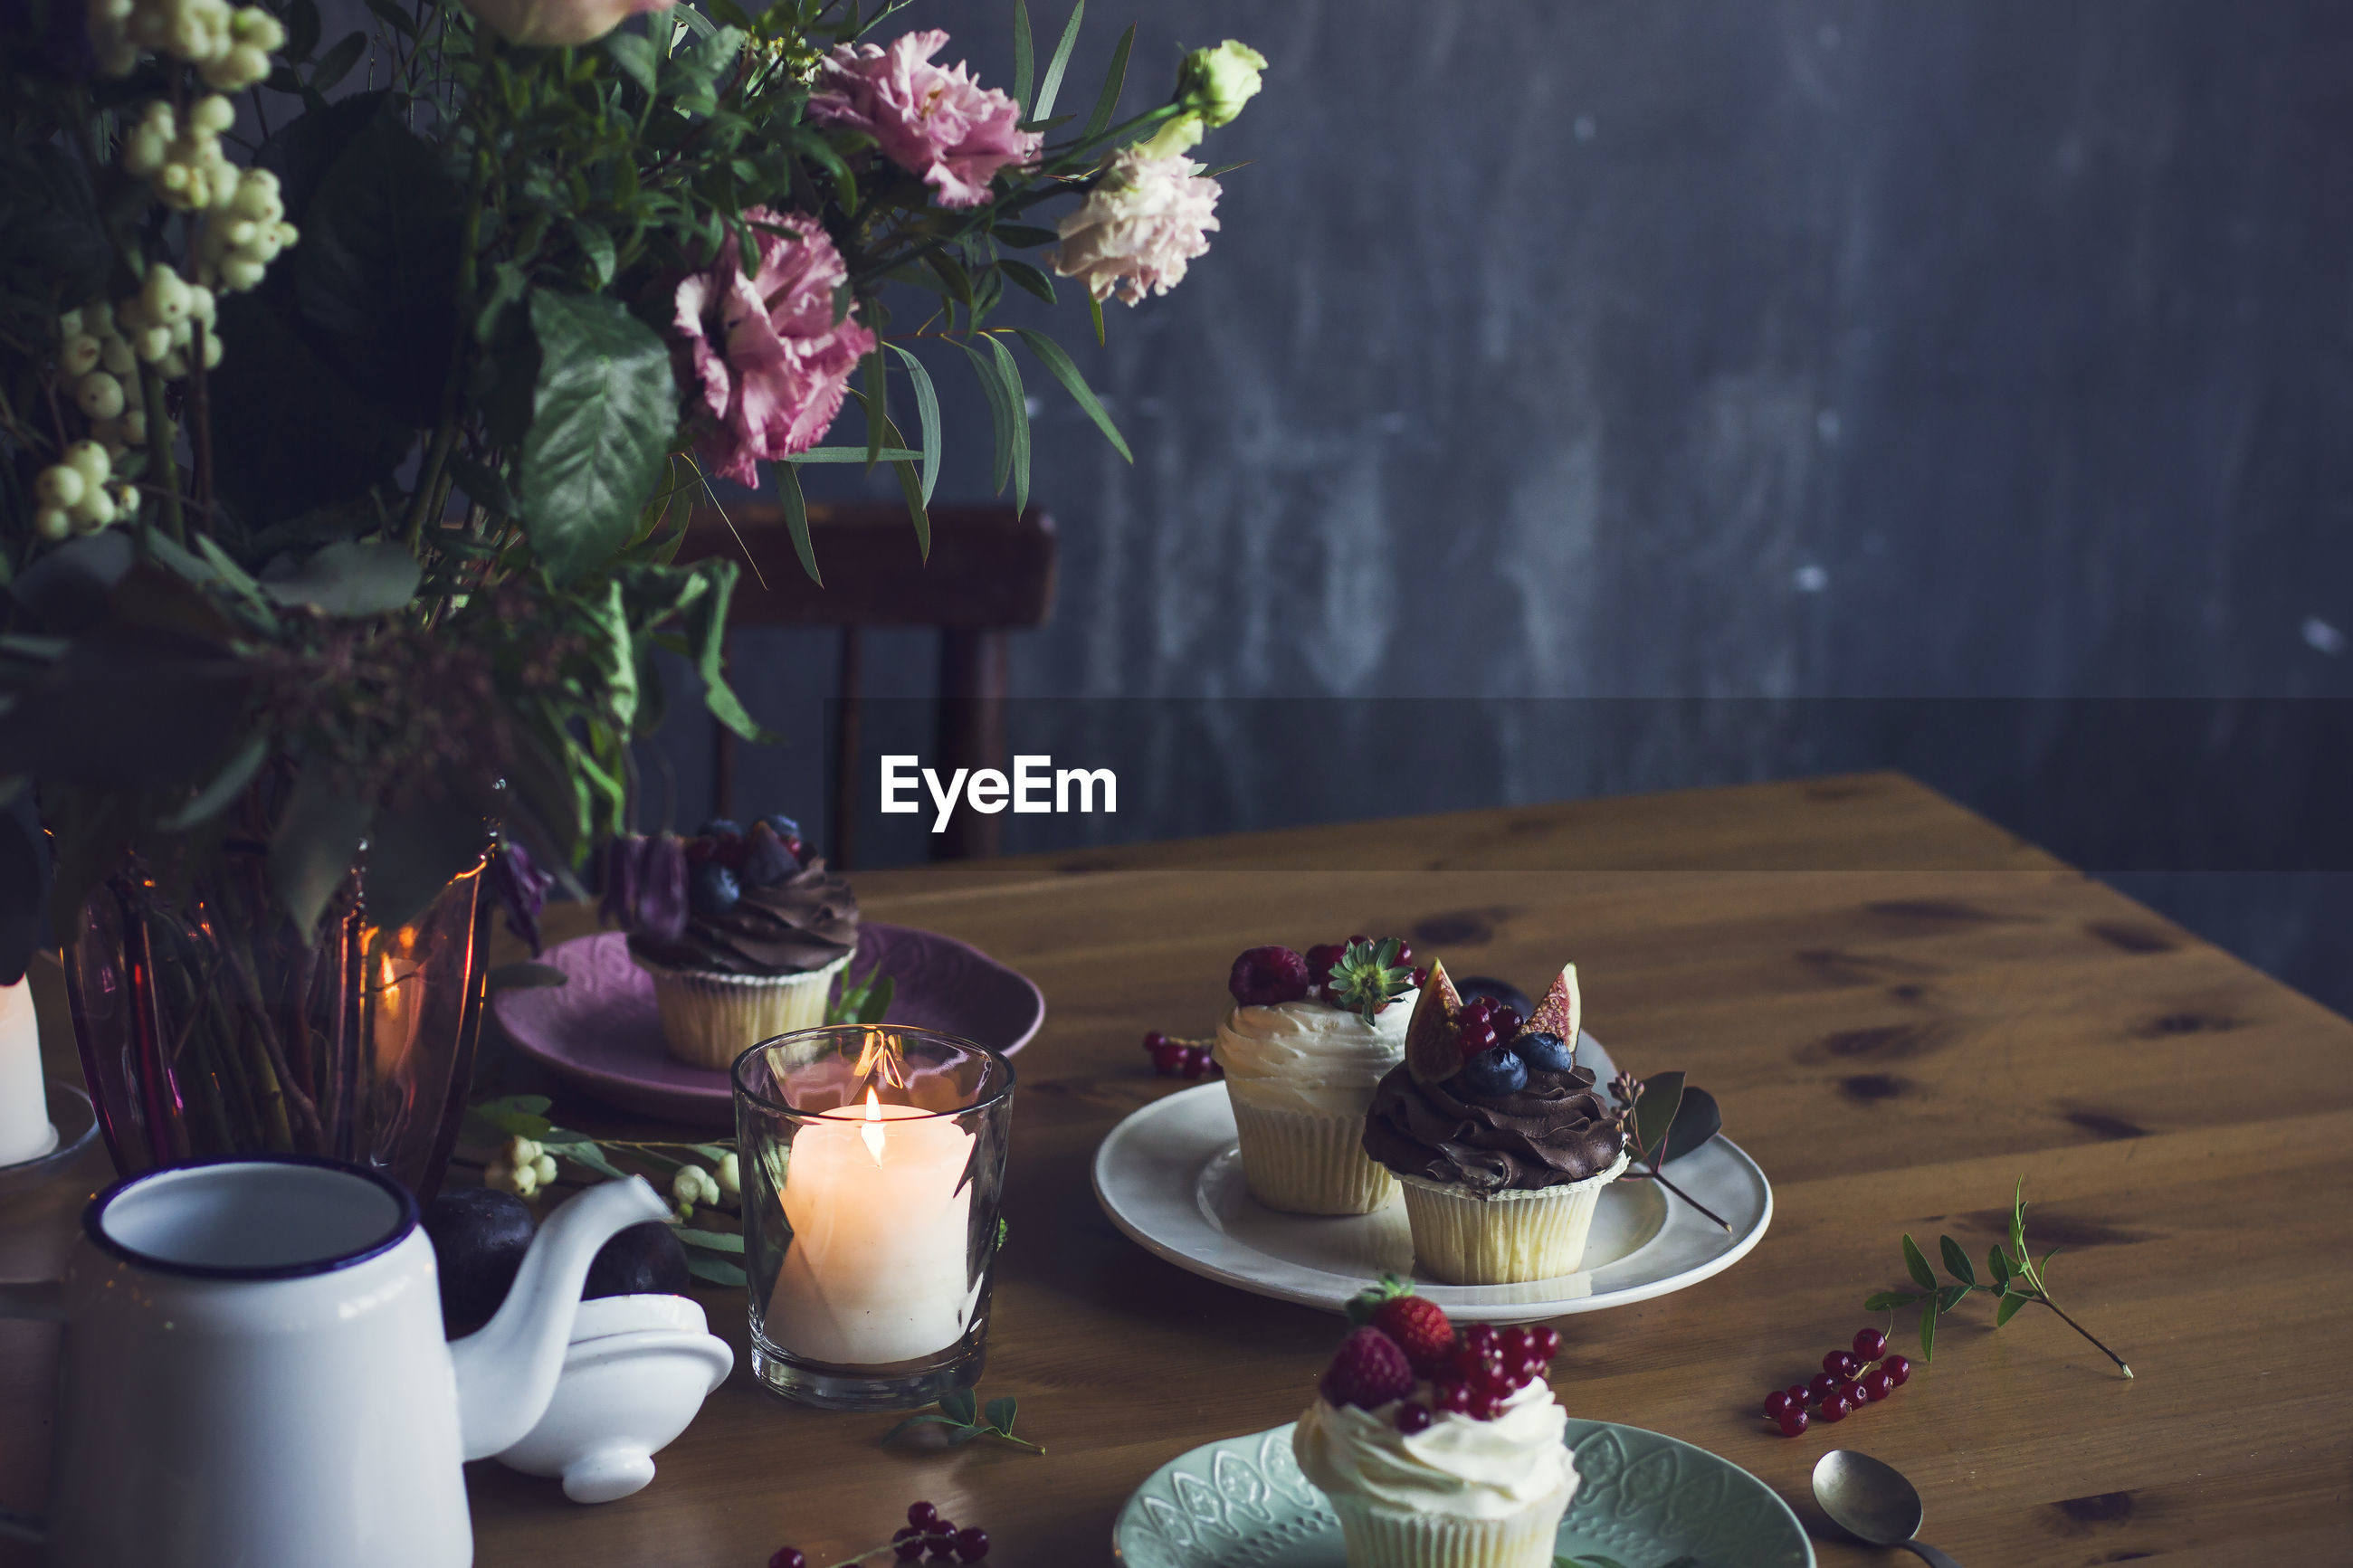 Flower vase and cup cakes in plates on table